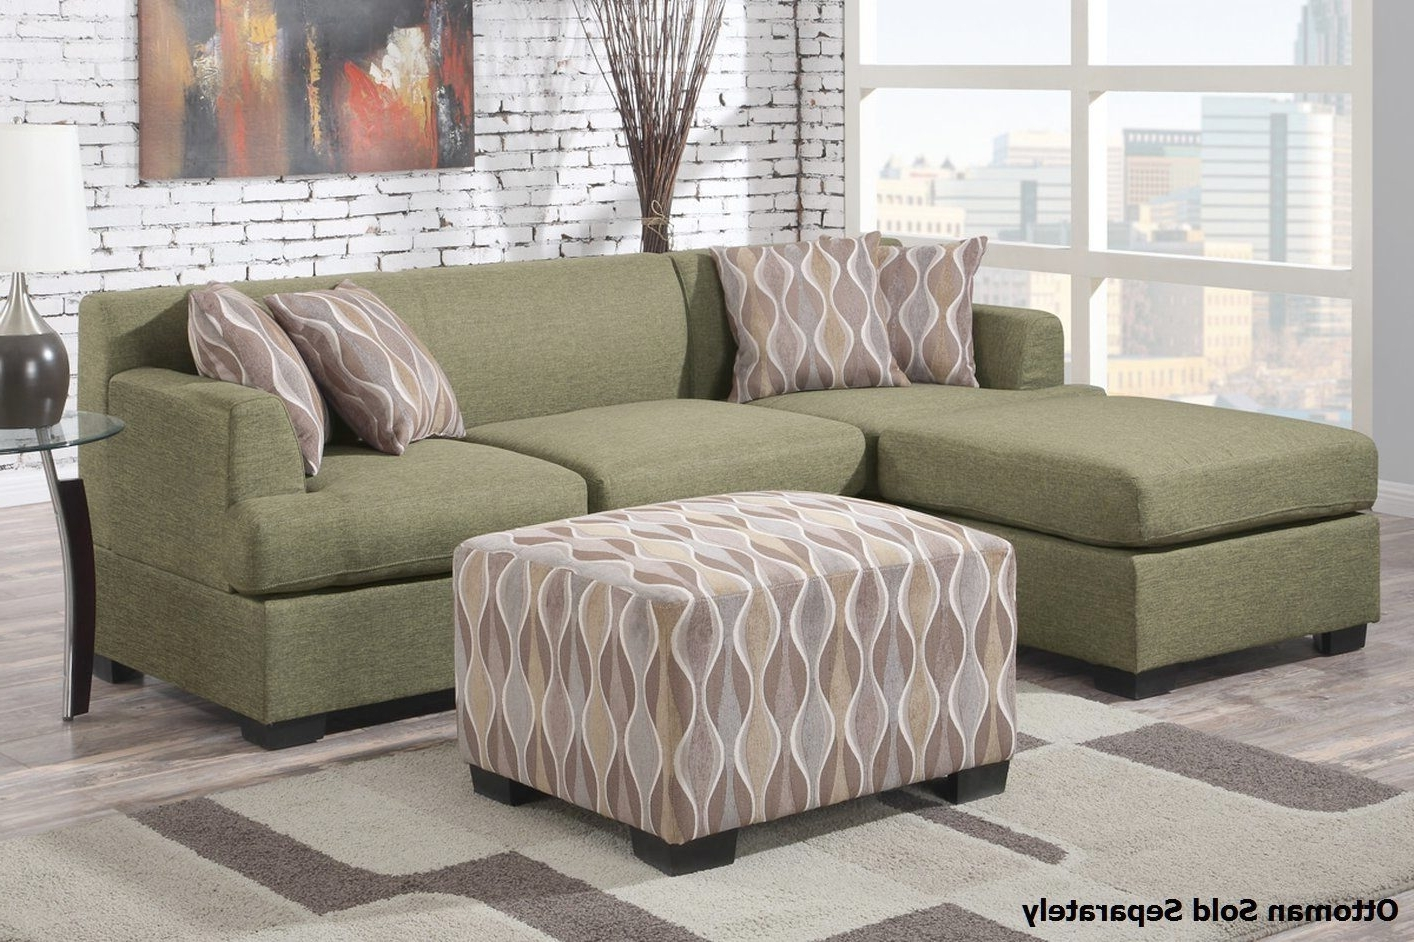 Best Fabric Sectional Sofa Great Ideas #3 Best Fabric Sectional In Well Known Fabric Sectional Sofas (View 20 of 20)